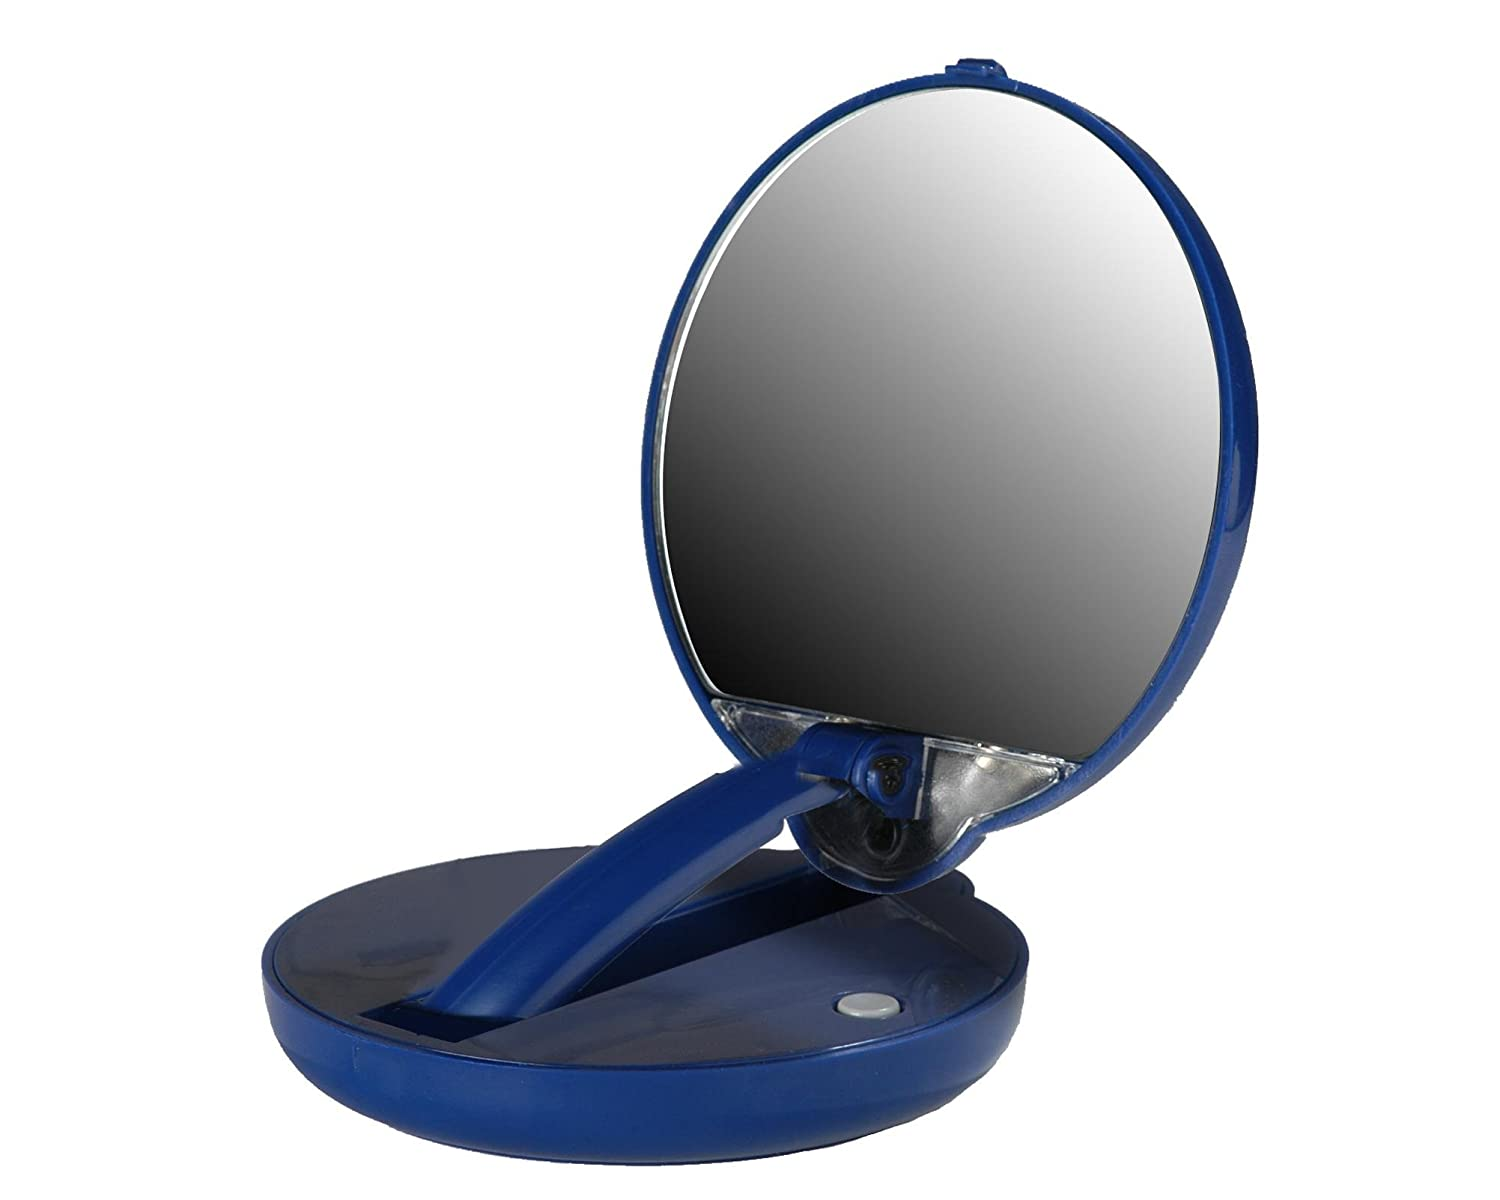 Floxite MirrorMateAdjustCompact 15xMag - Blue